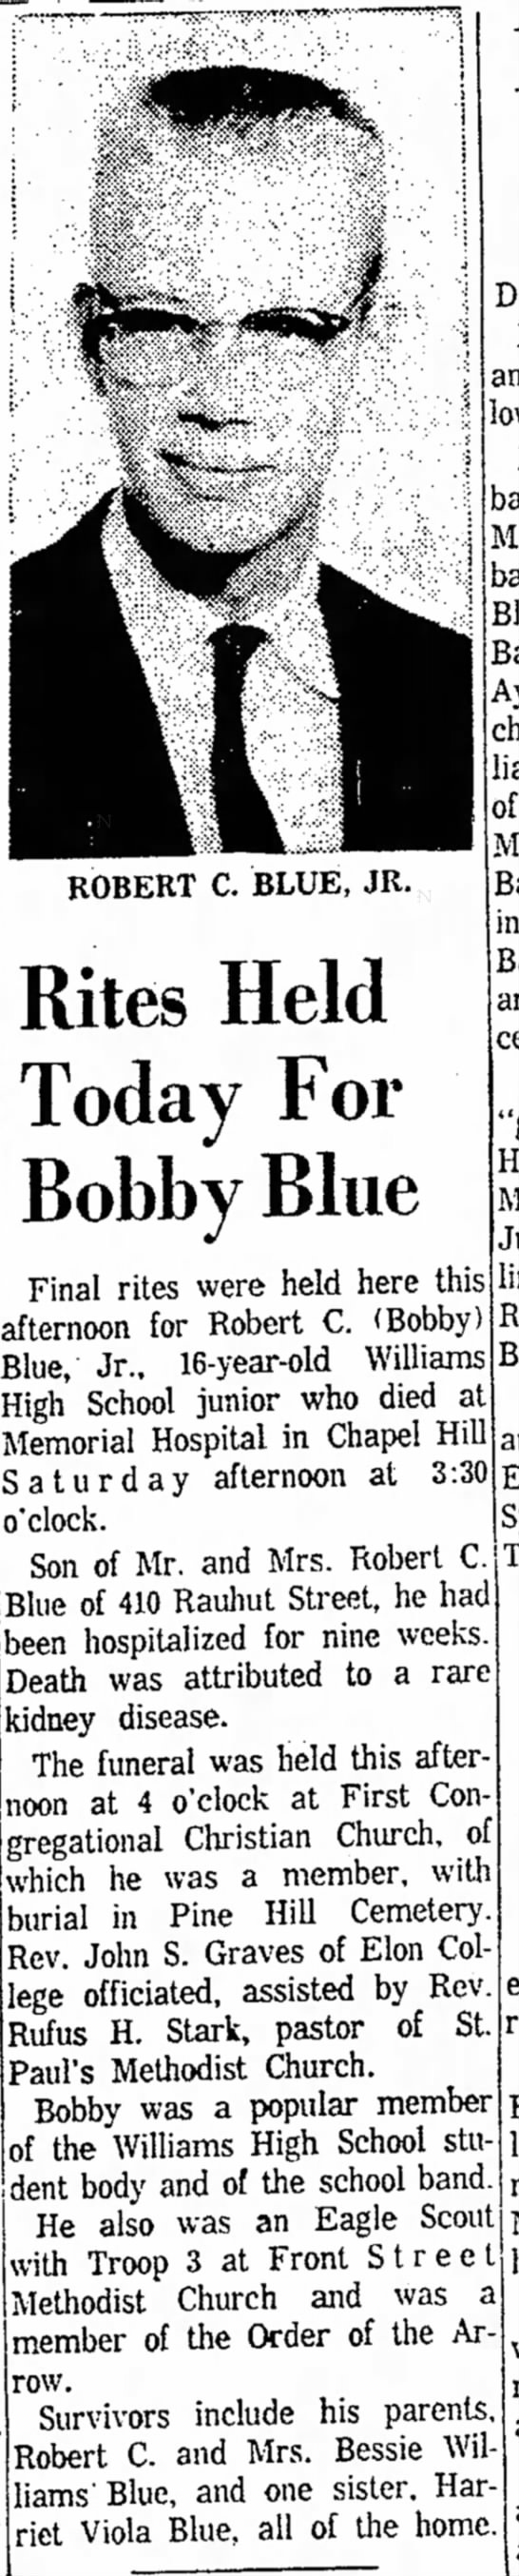 The Daily Times-News (Burlington, NC) March 9, 1959, page 9 -